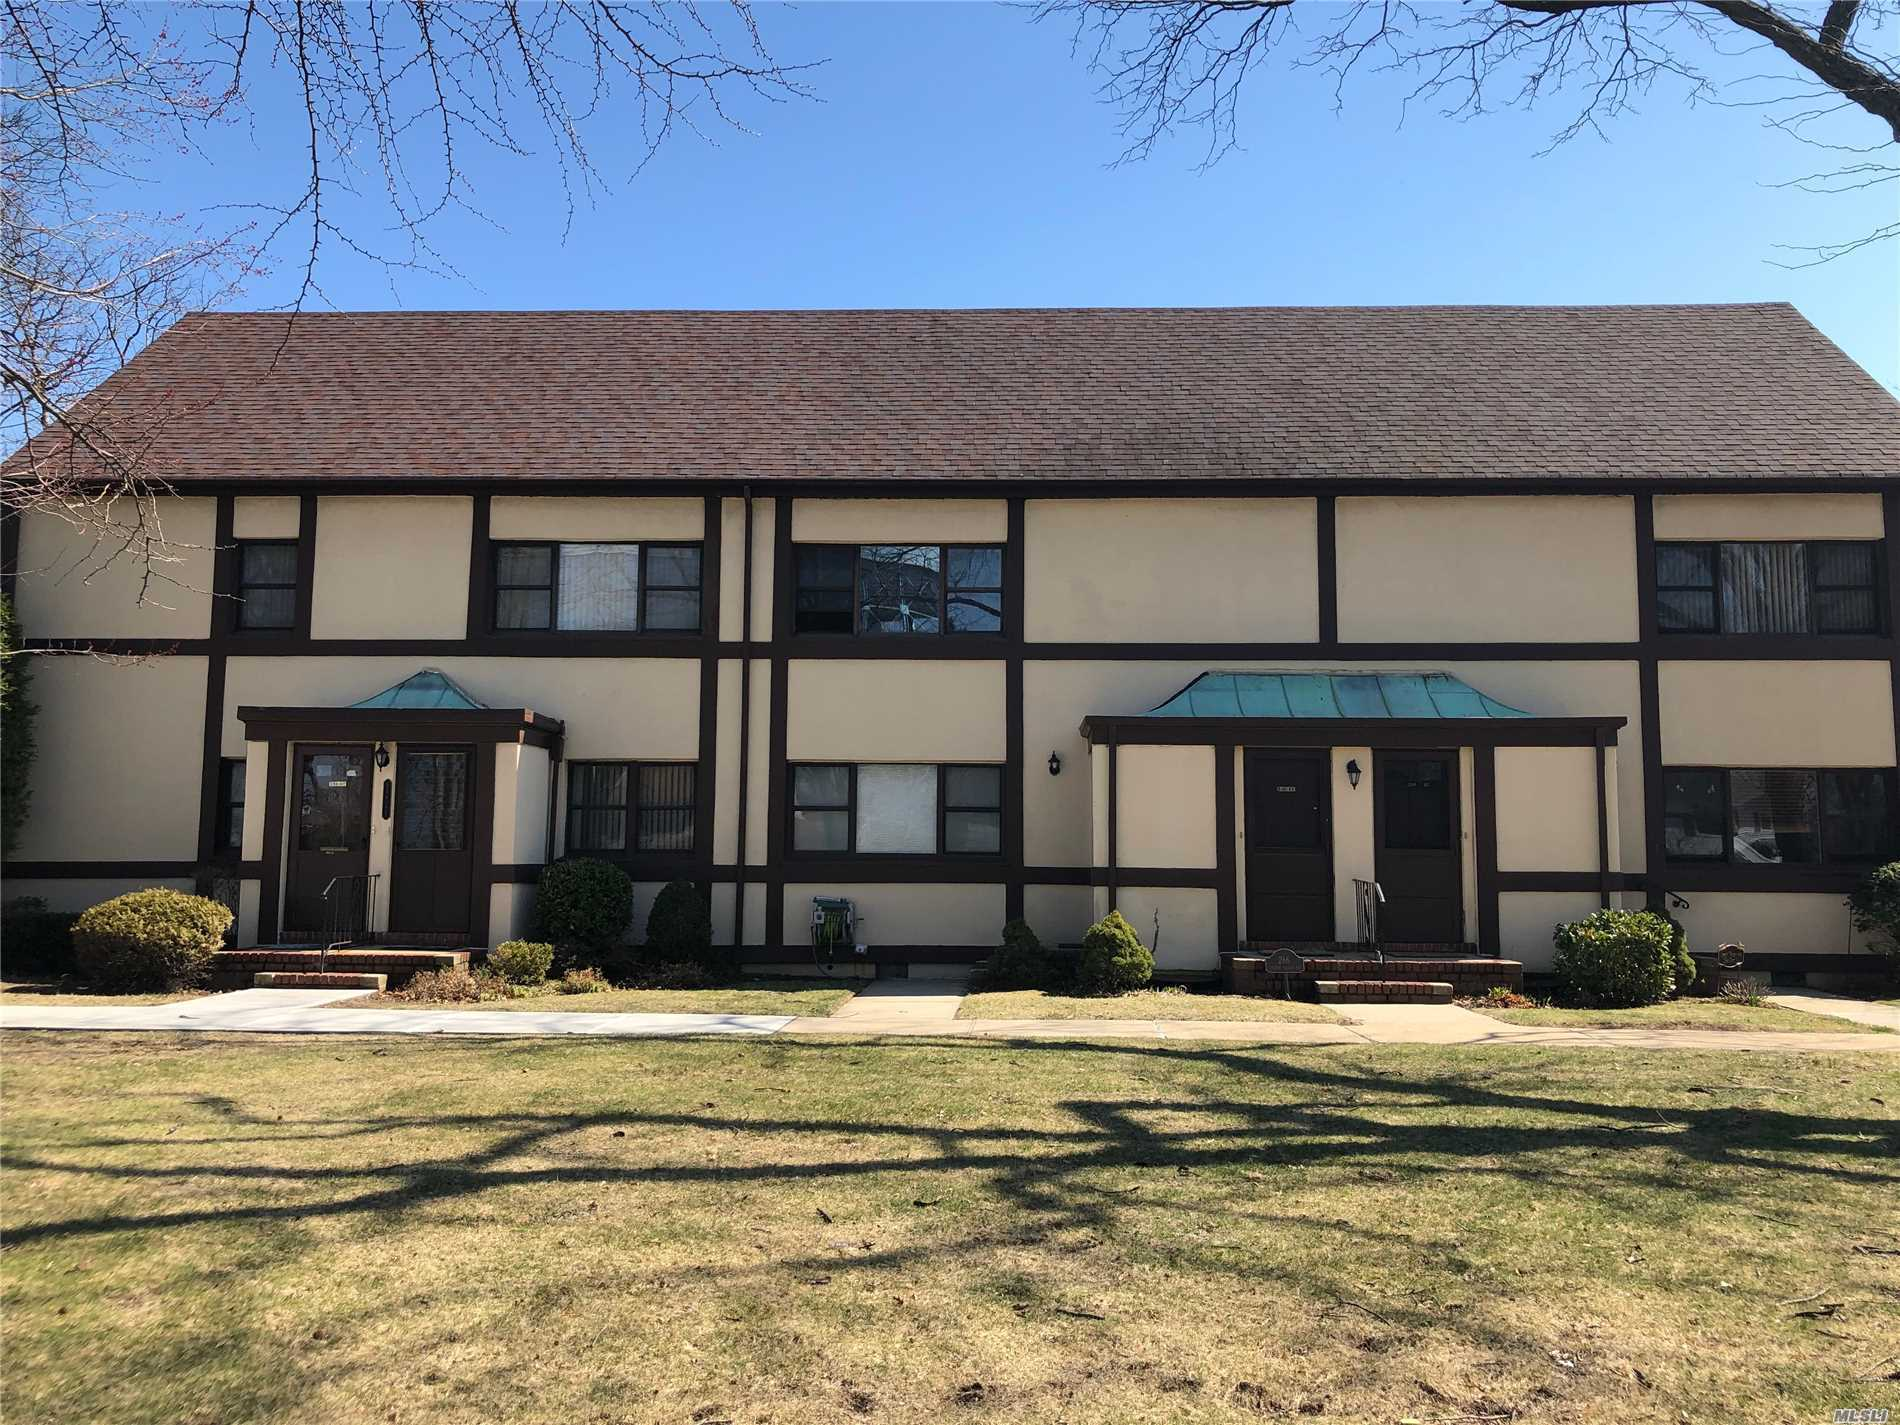 Great Opportunity to Own Sunny 1 Bedroom Upper Unit CO-OP With All the Garden City Ammenities! Convenient Location Near to LIRR, Shopping.